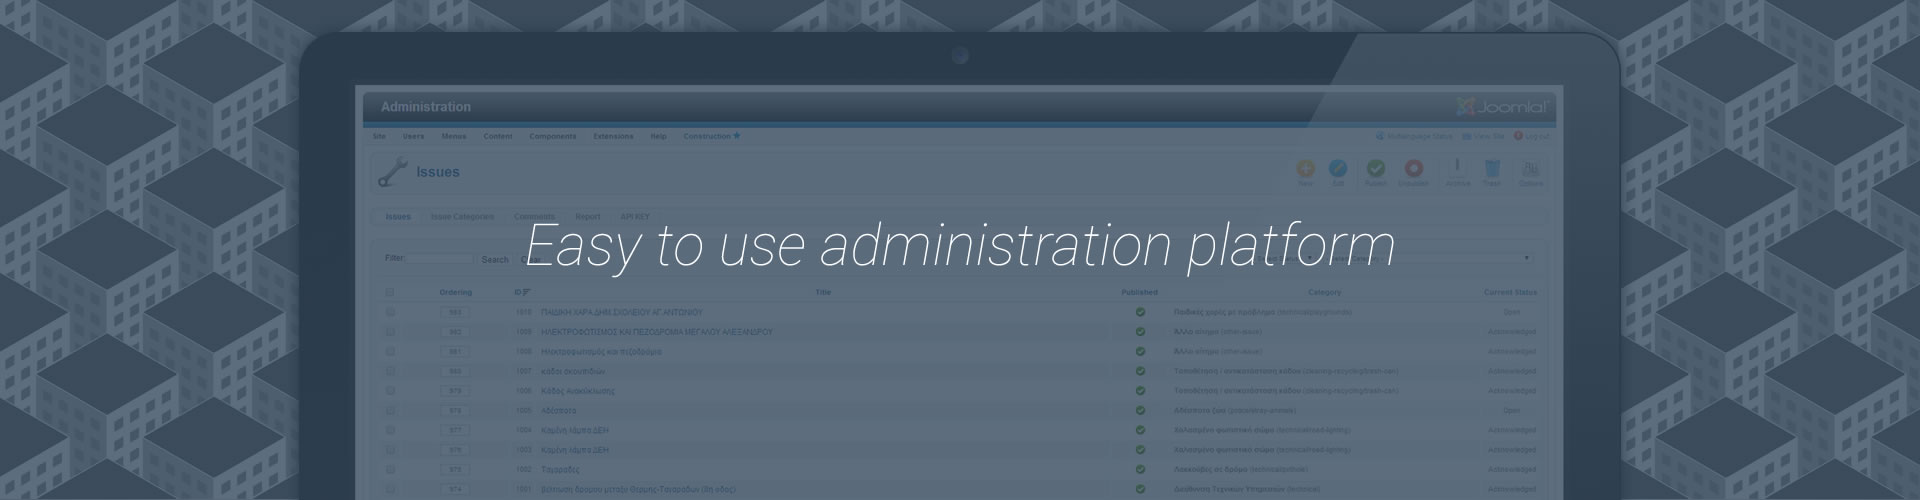 Administrating